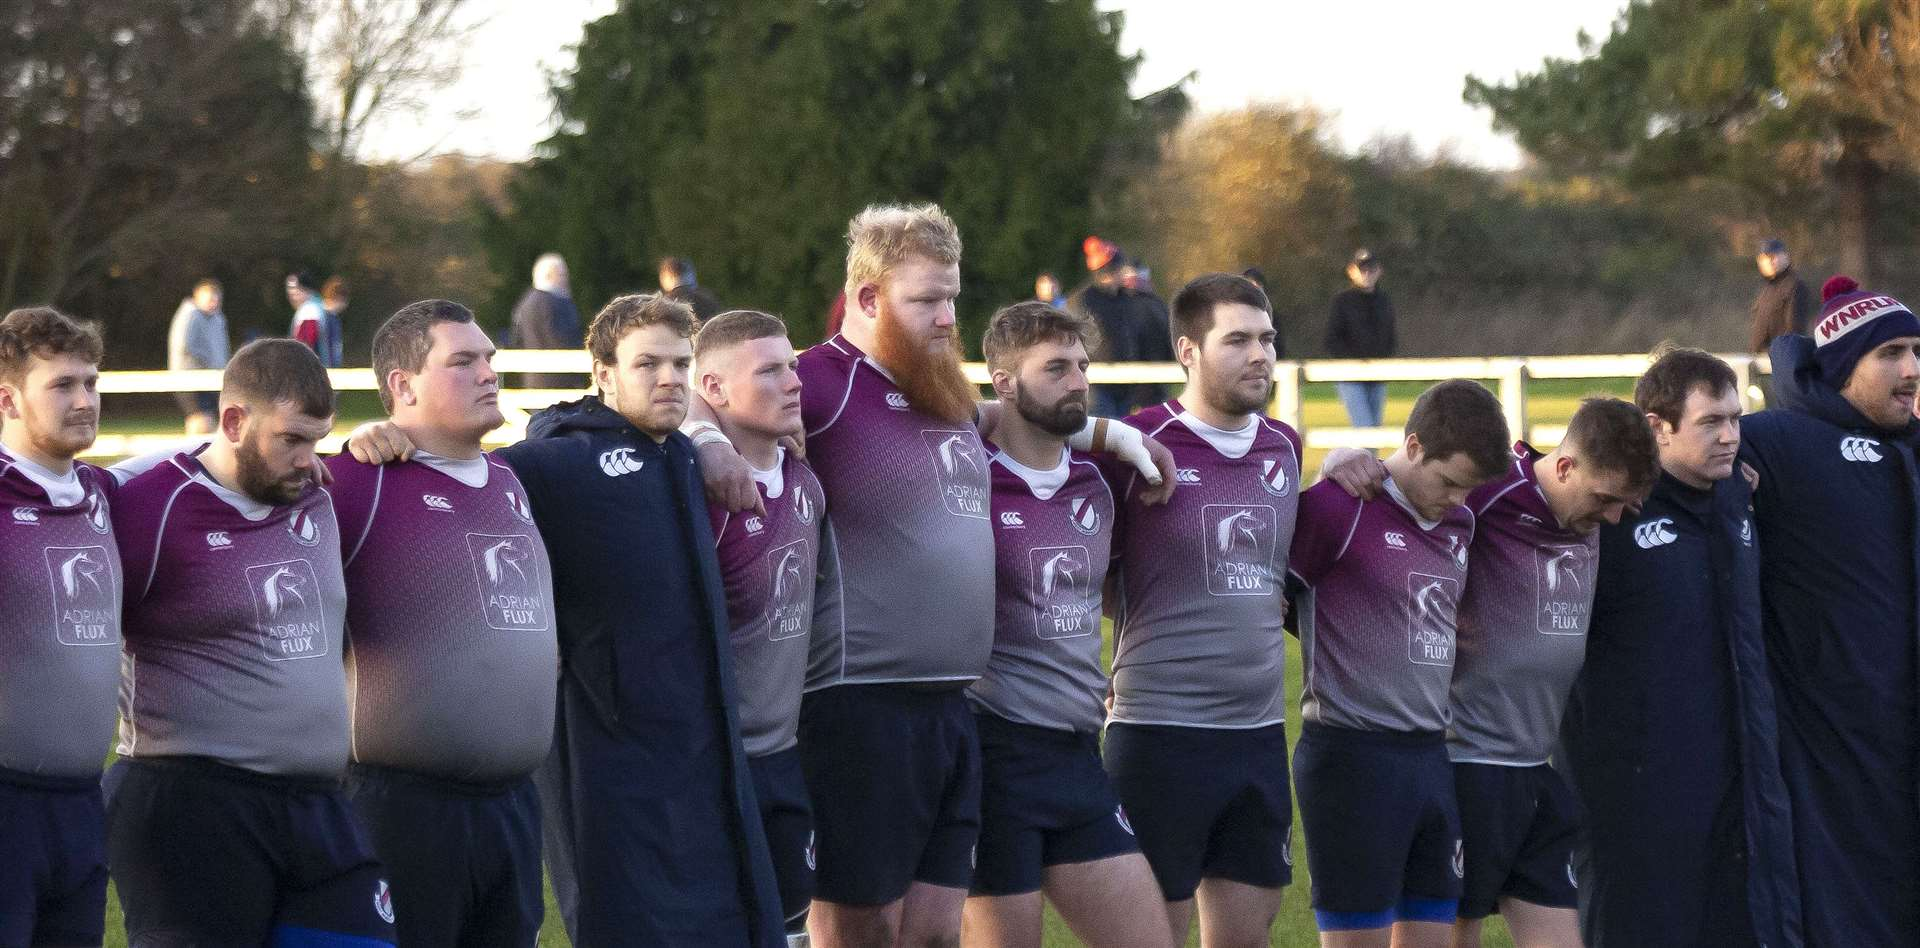 West Norfolk Rugby Club players group ahead of a derby against Wisbech last season before the sport was hit by the coronavirus pandemic